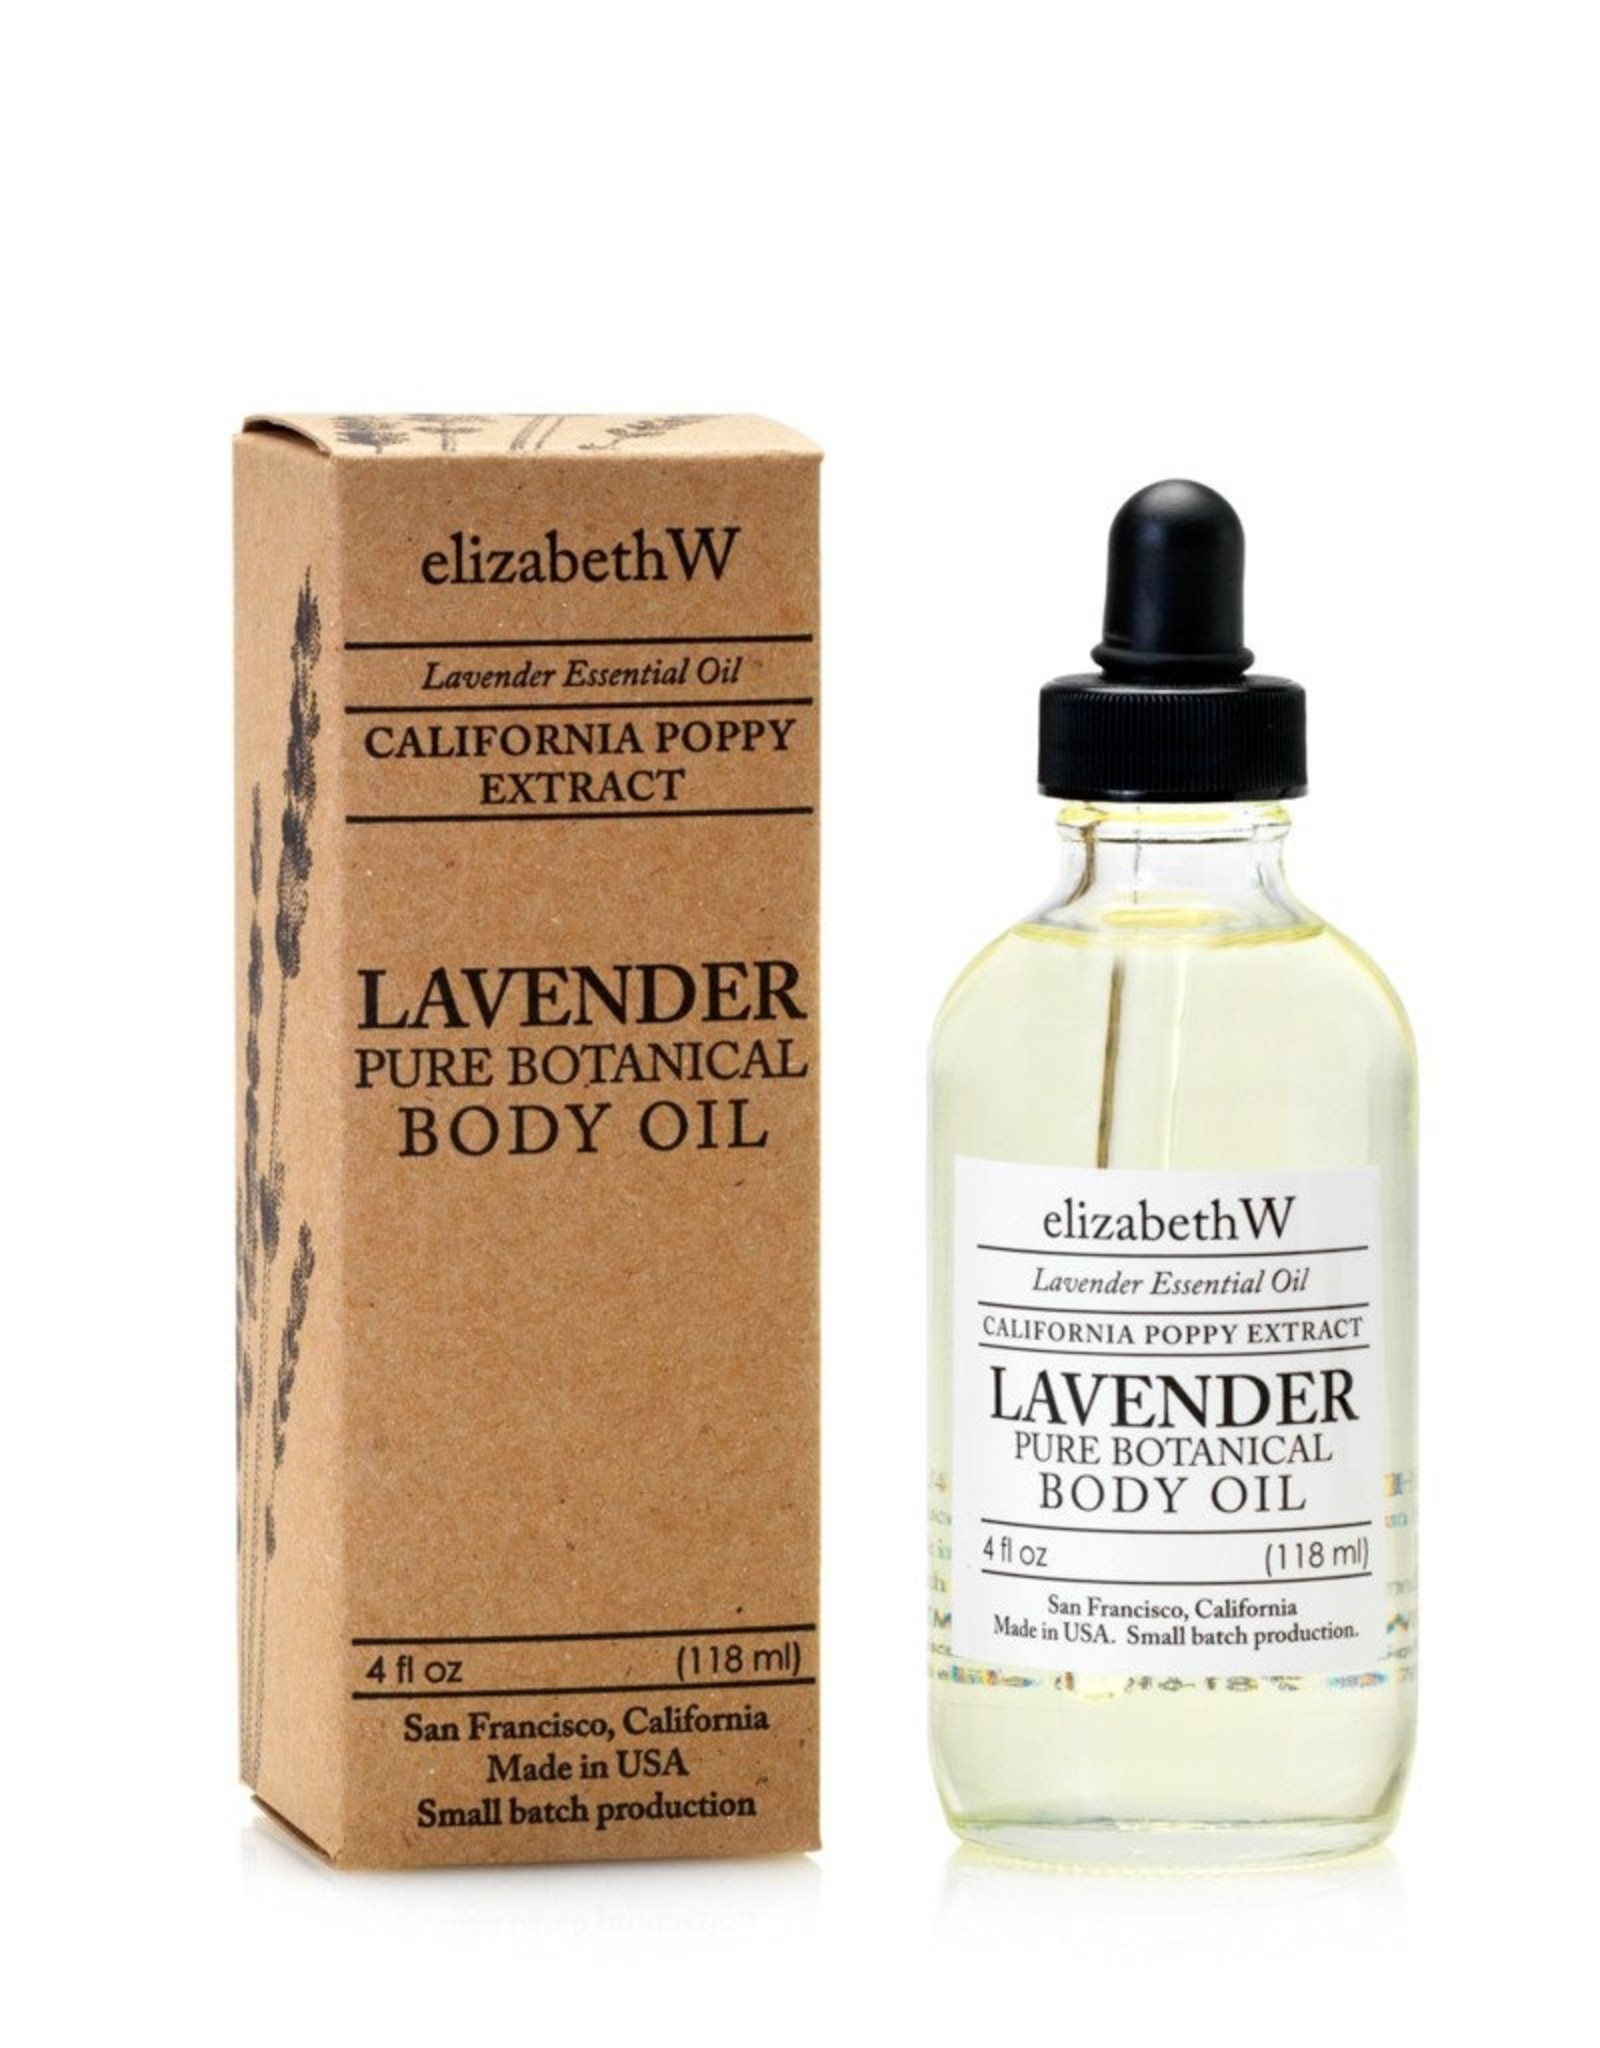 Elizabeth W Lavender Body Oil